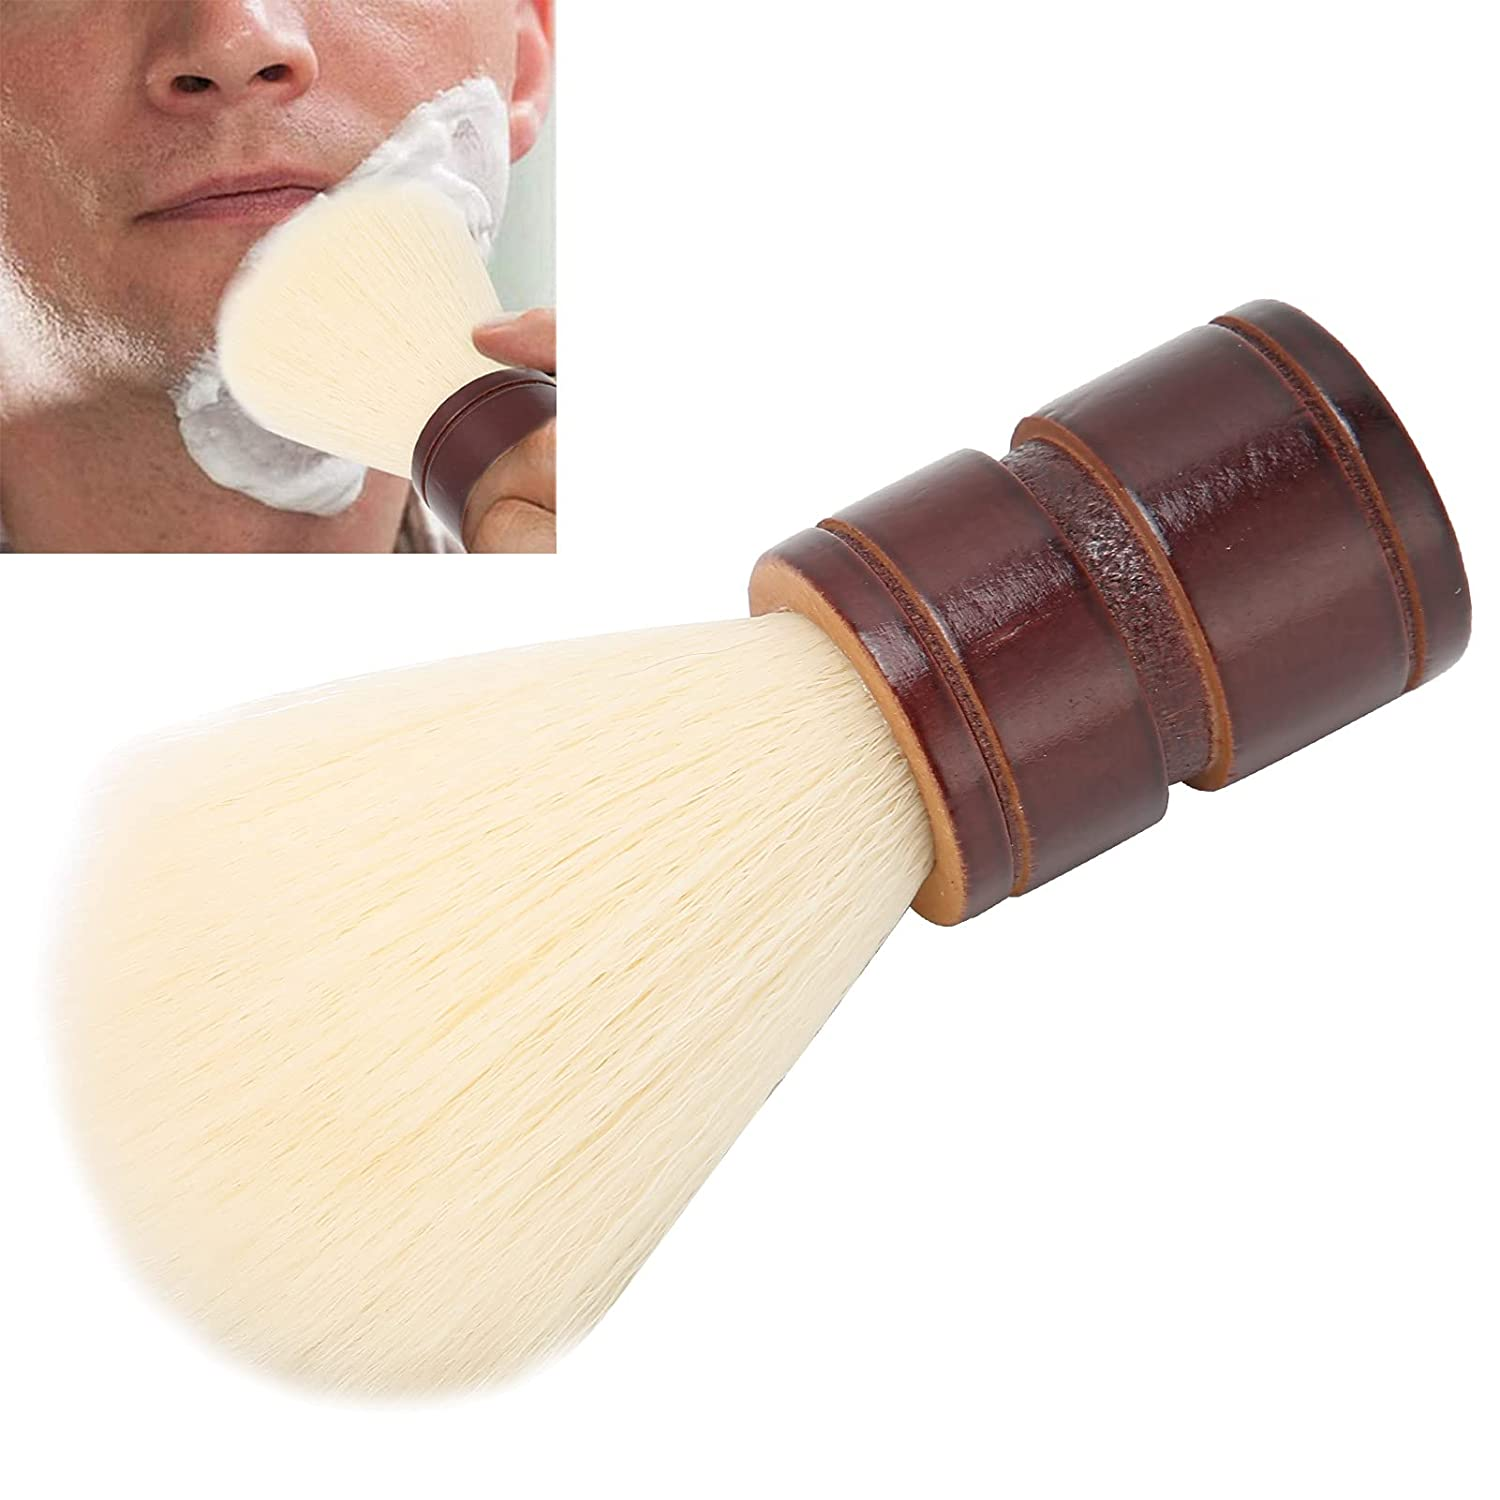 It is very popular Professional ! Super beauty product restock quality top! Beard Cleaning Tool Design Ergonomic Hand Crafted